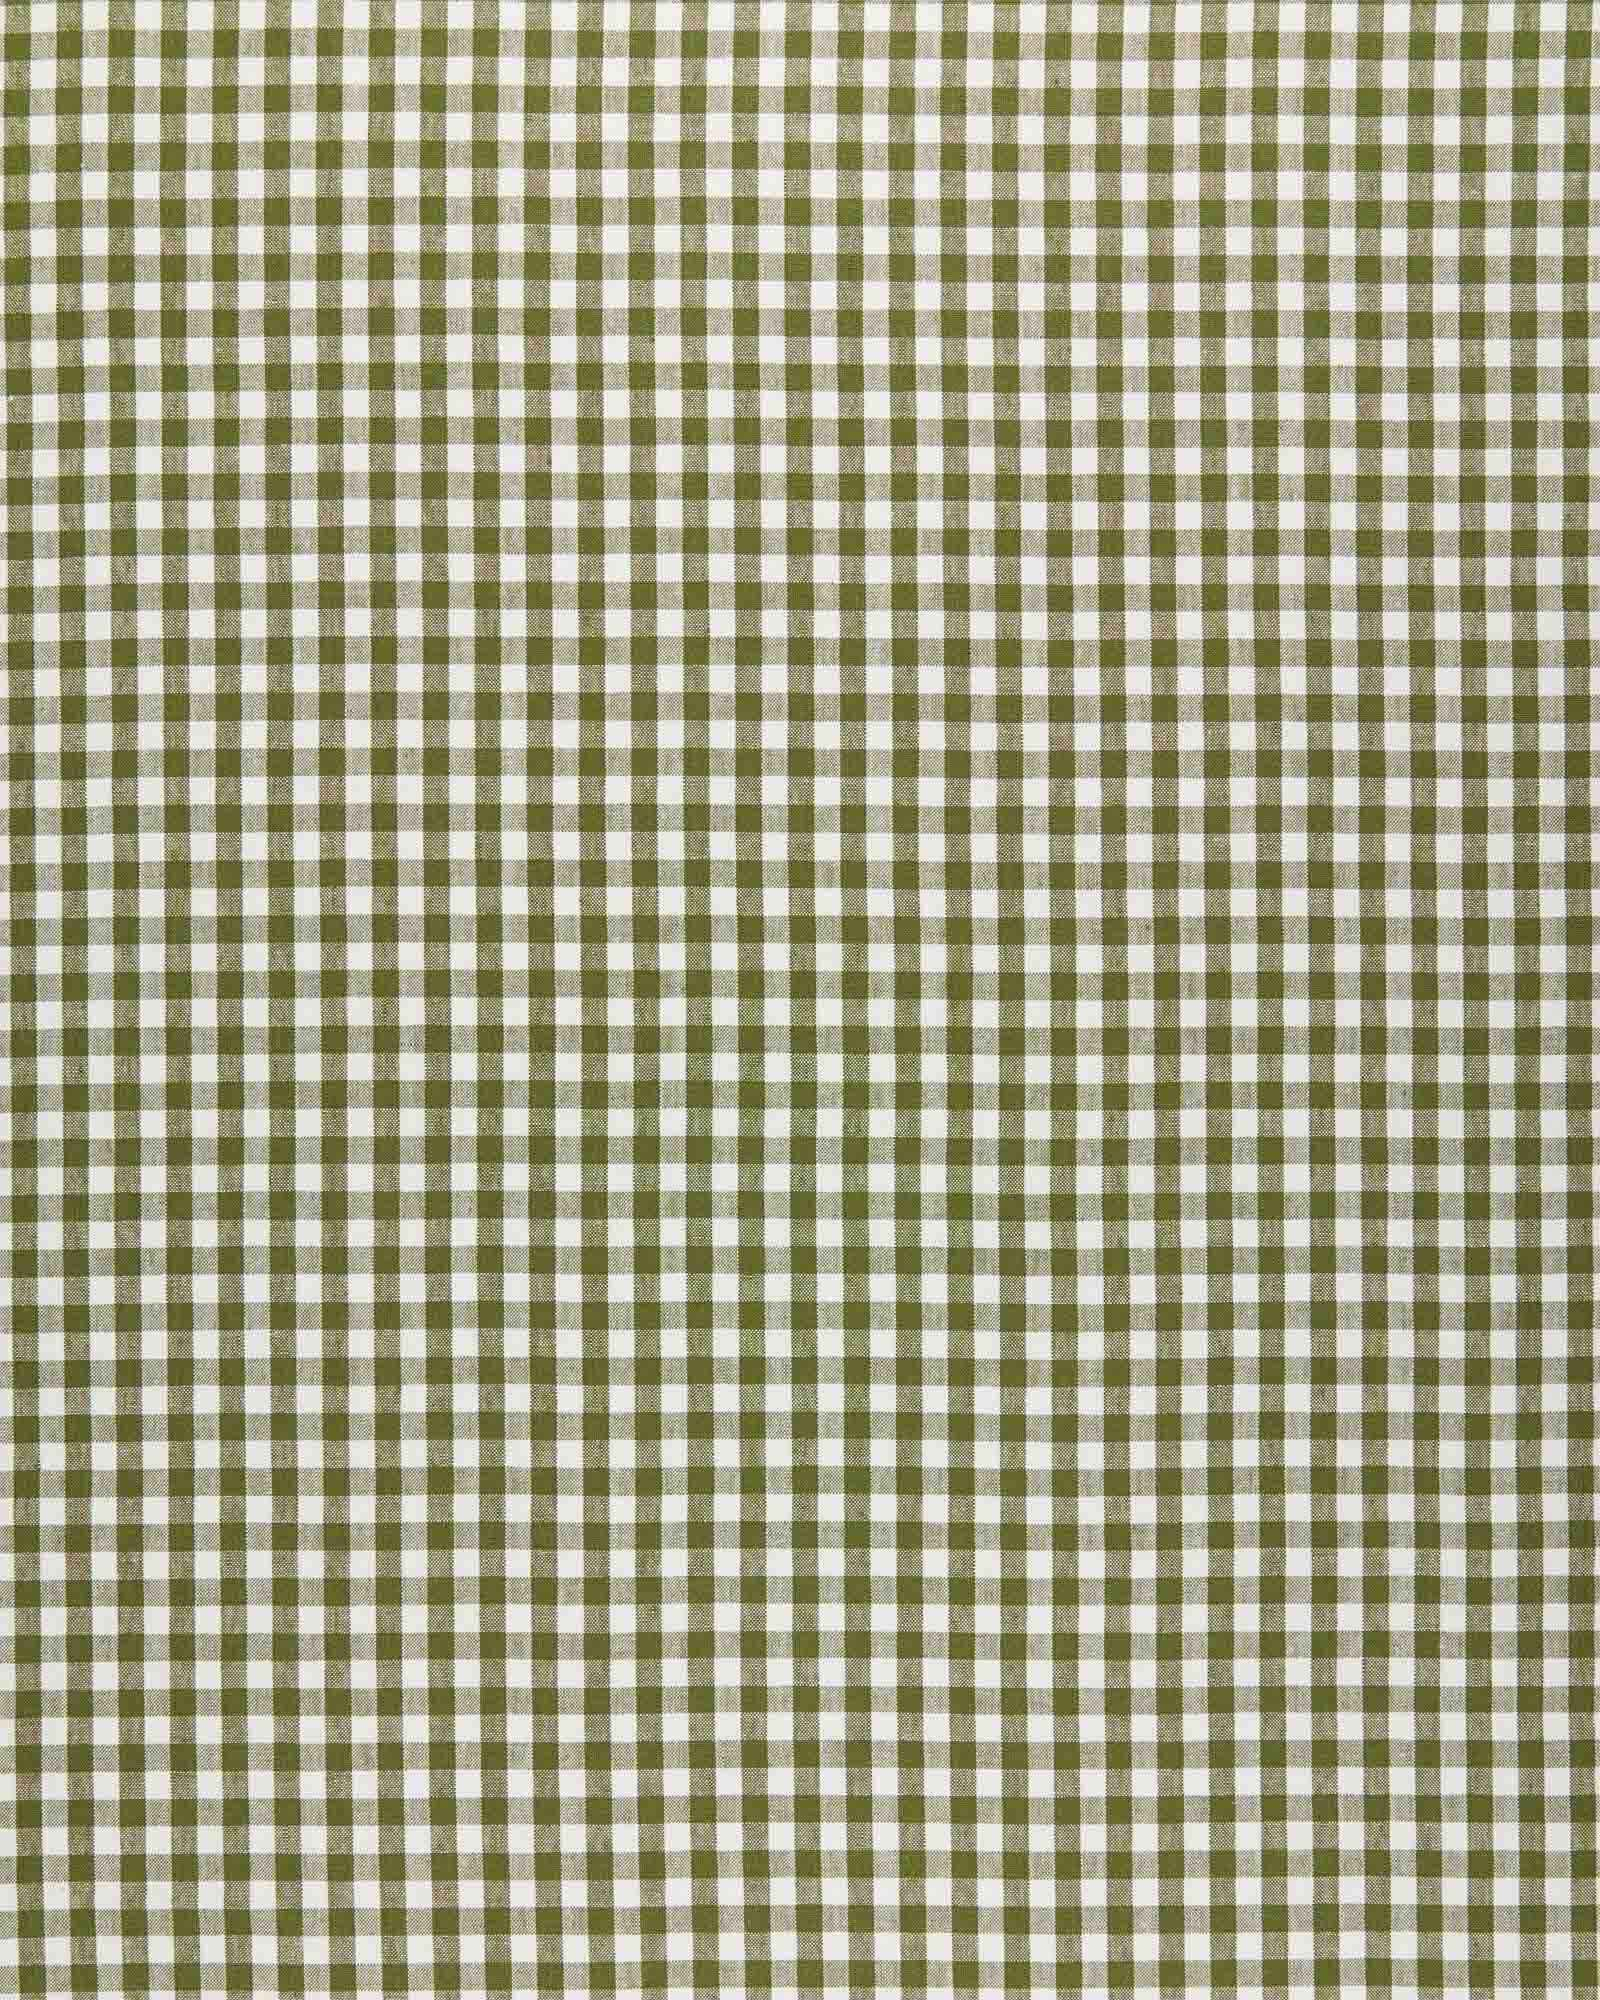 Fabric by the Yard - Petite Gingham Linen, Grove